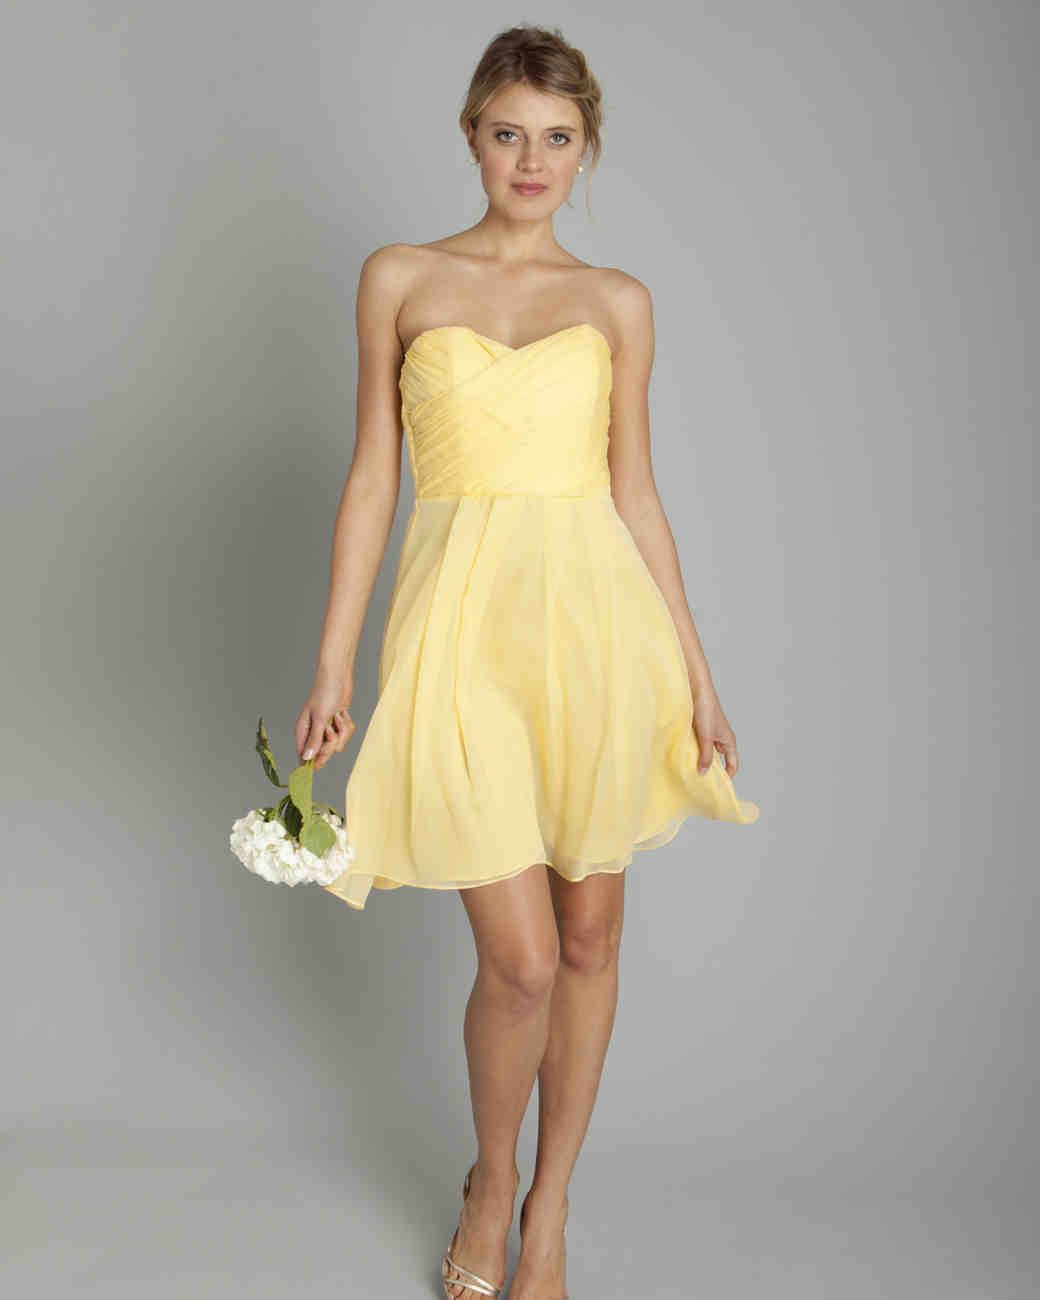 Yellow bridesmaid dresses martha stewart weddings coren moore spring 2013 ombrellifo Images